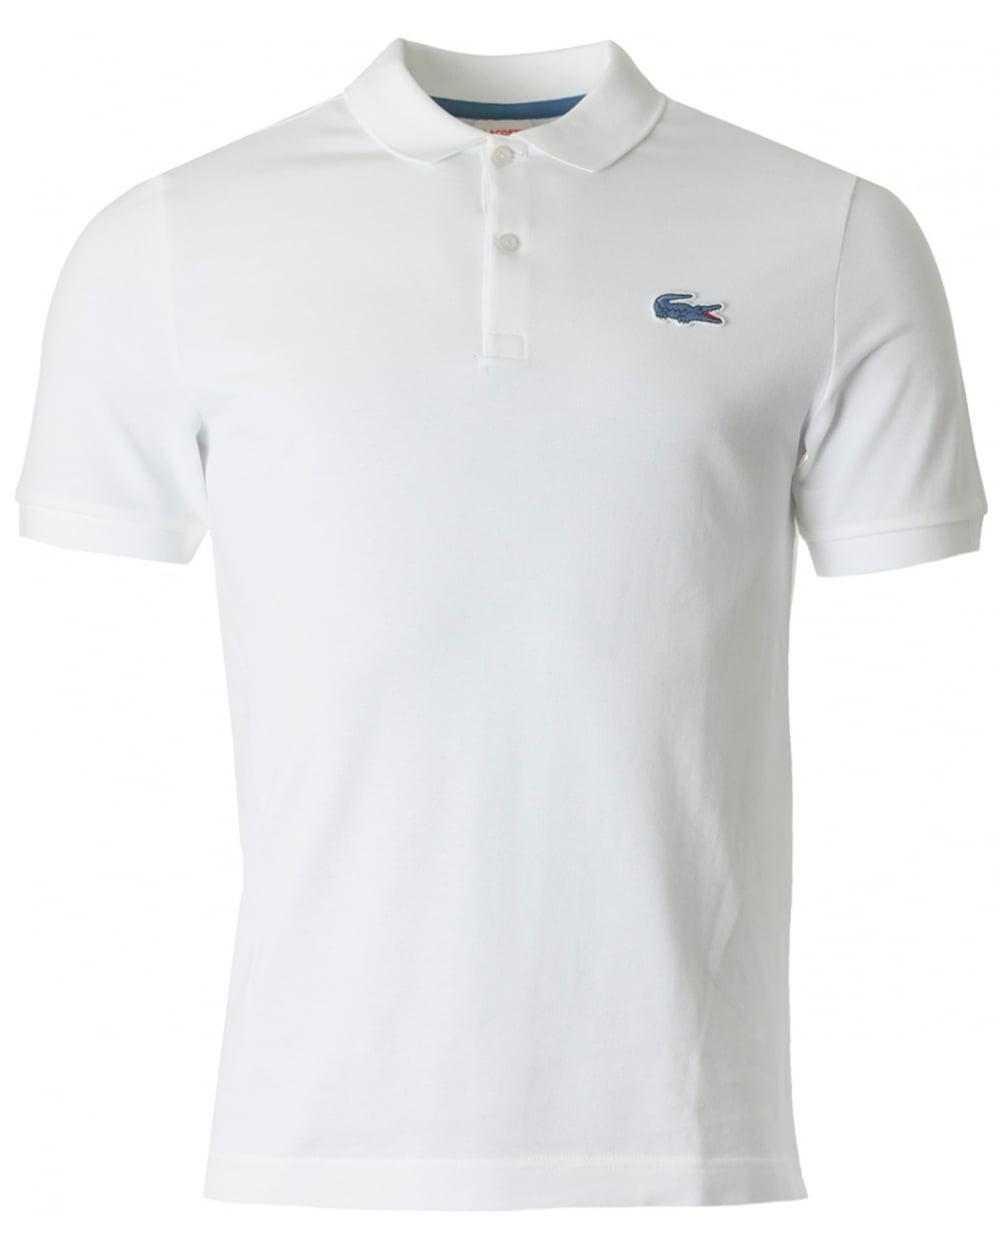 Lacoste L Ive Short Sleeved Big Croc Pique Polo In White For Men Lyst